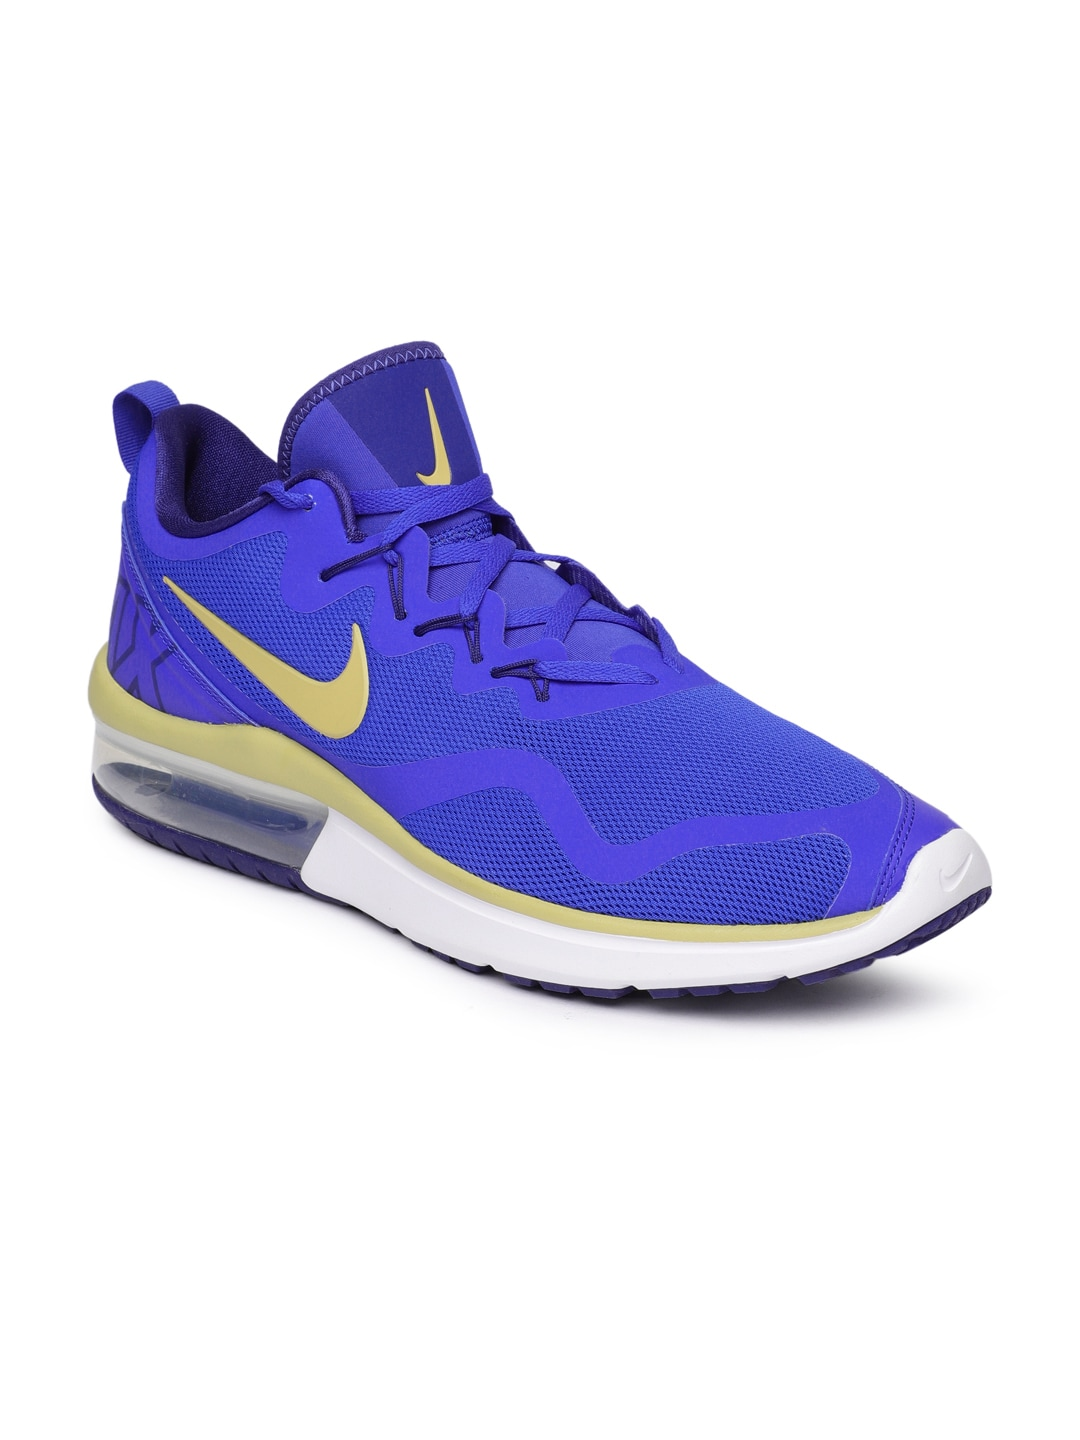 buy online f0664 64f10 Nike Air Max Shoes - Buy Nike Air Max Shoes Online for Men   Women